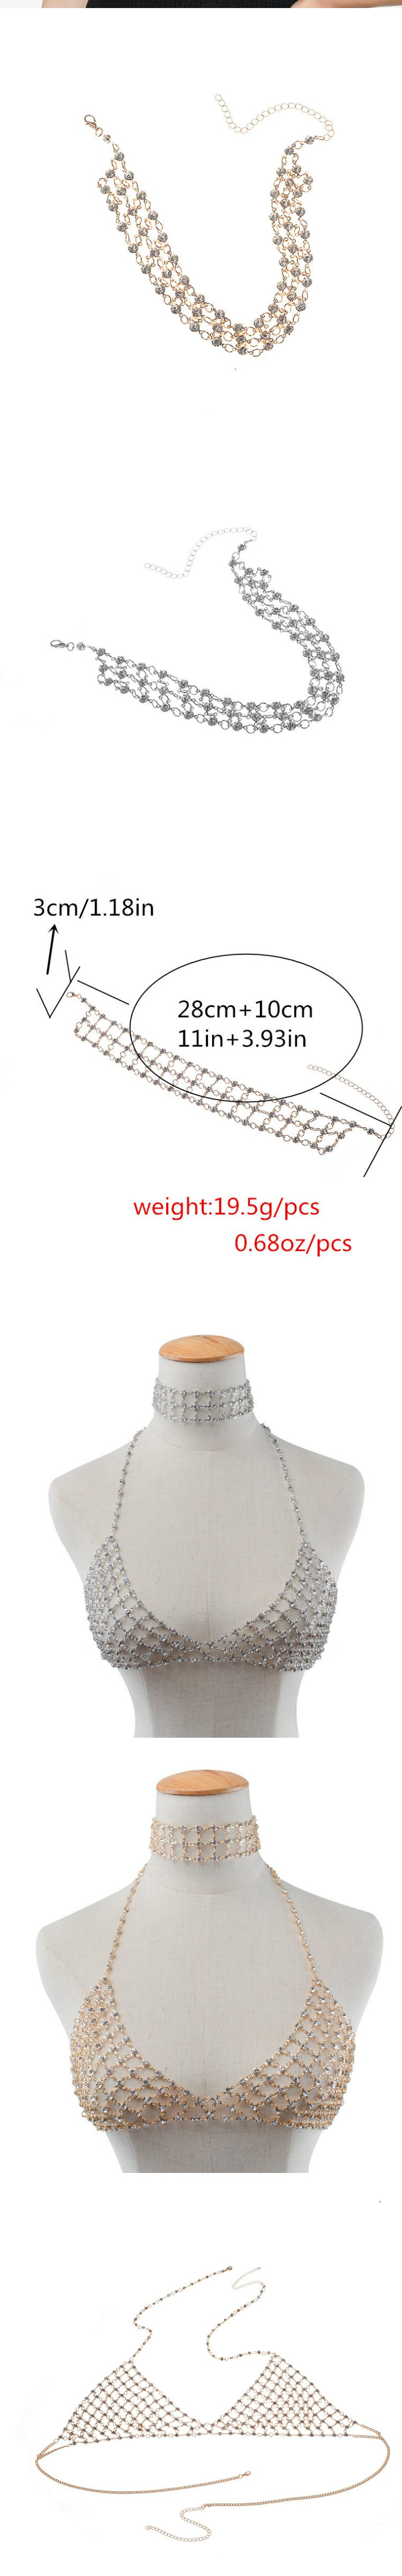 Trendsetter cross-border performance stage accessories popular new elements sexy exaggeration full drill multi-layer neck chain chest chain set